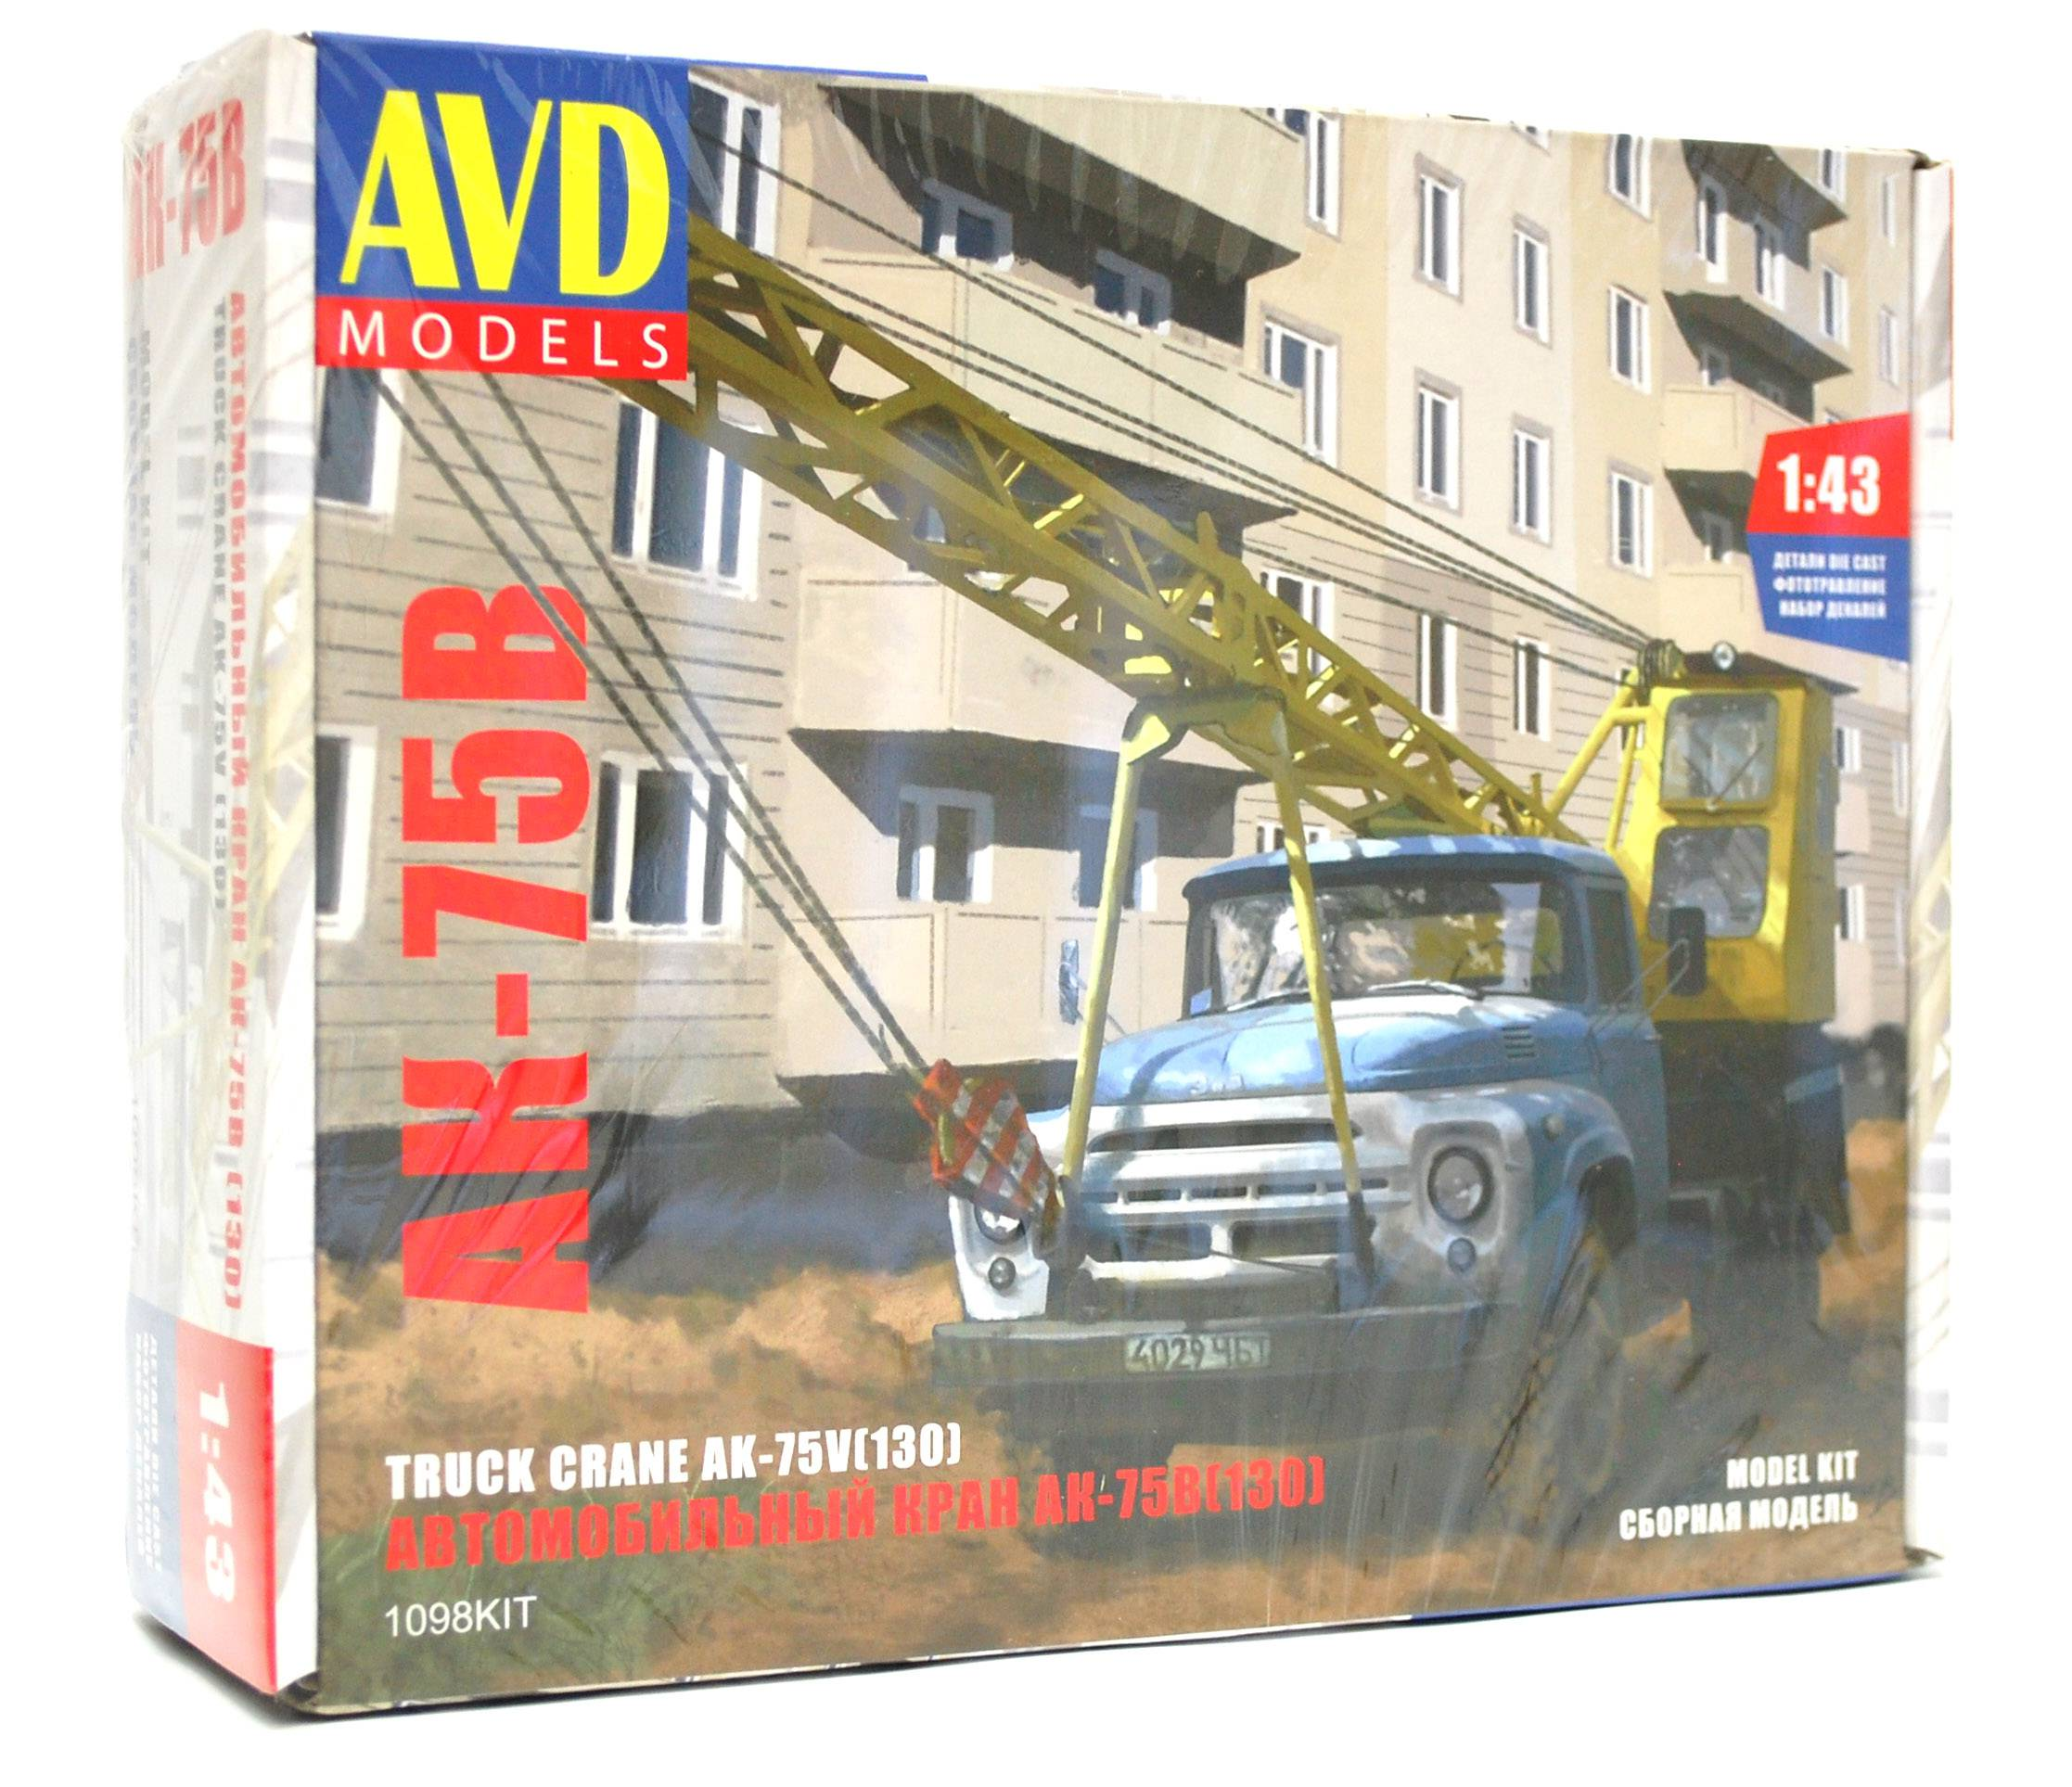 Autoeřáb AK-75B (ZIL-130) - model AVD KIT 1:43